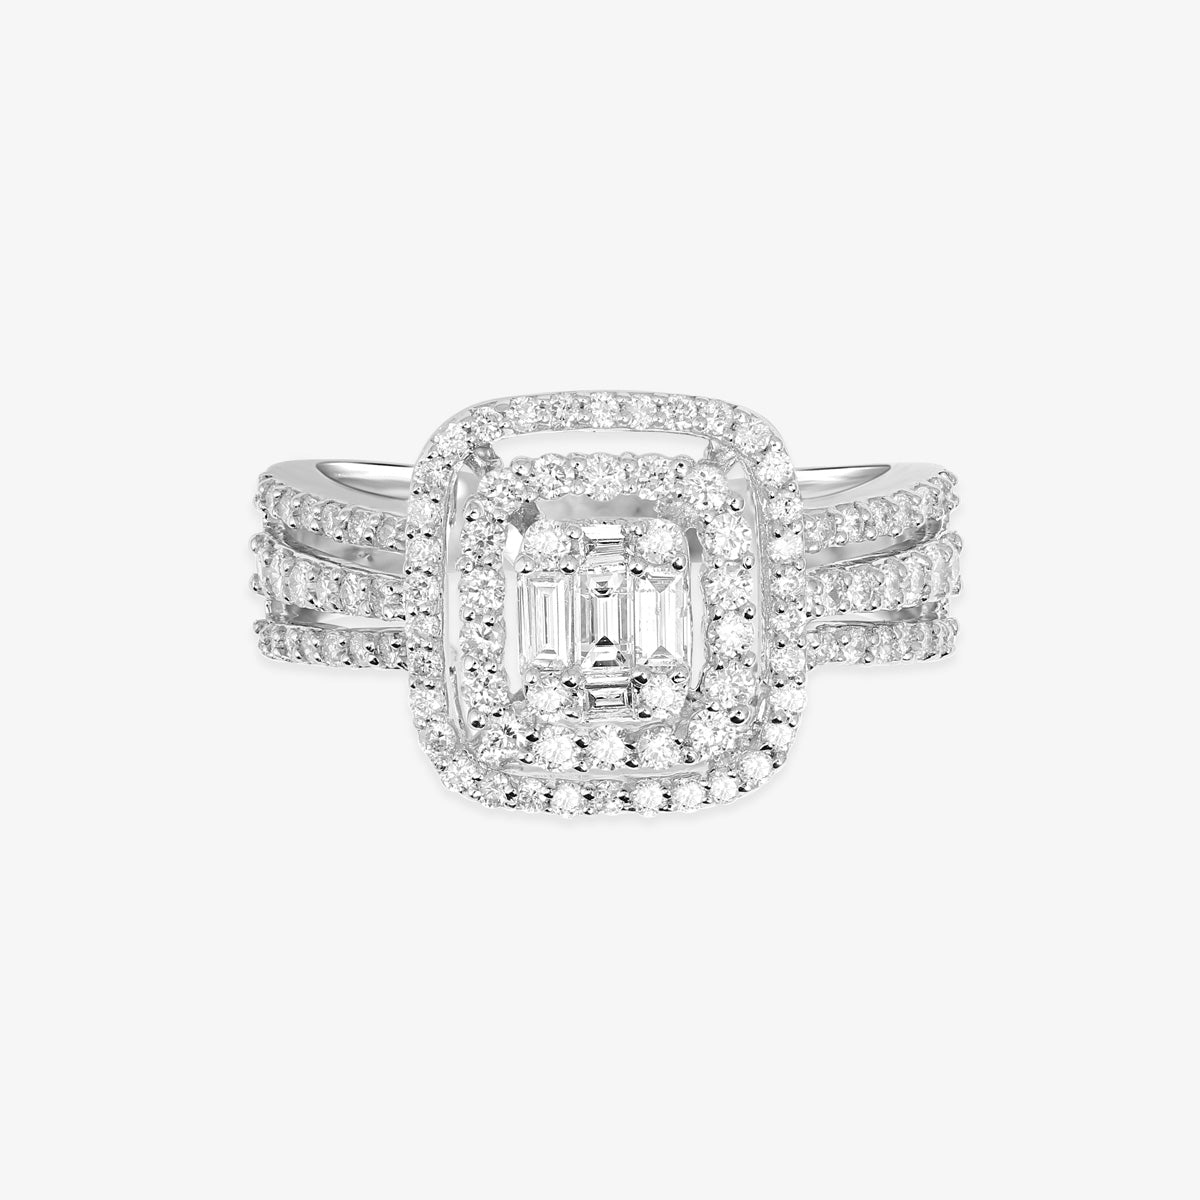 Diamond Wedding Ring With Halo And A Split Shank - estellacollection